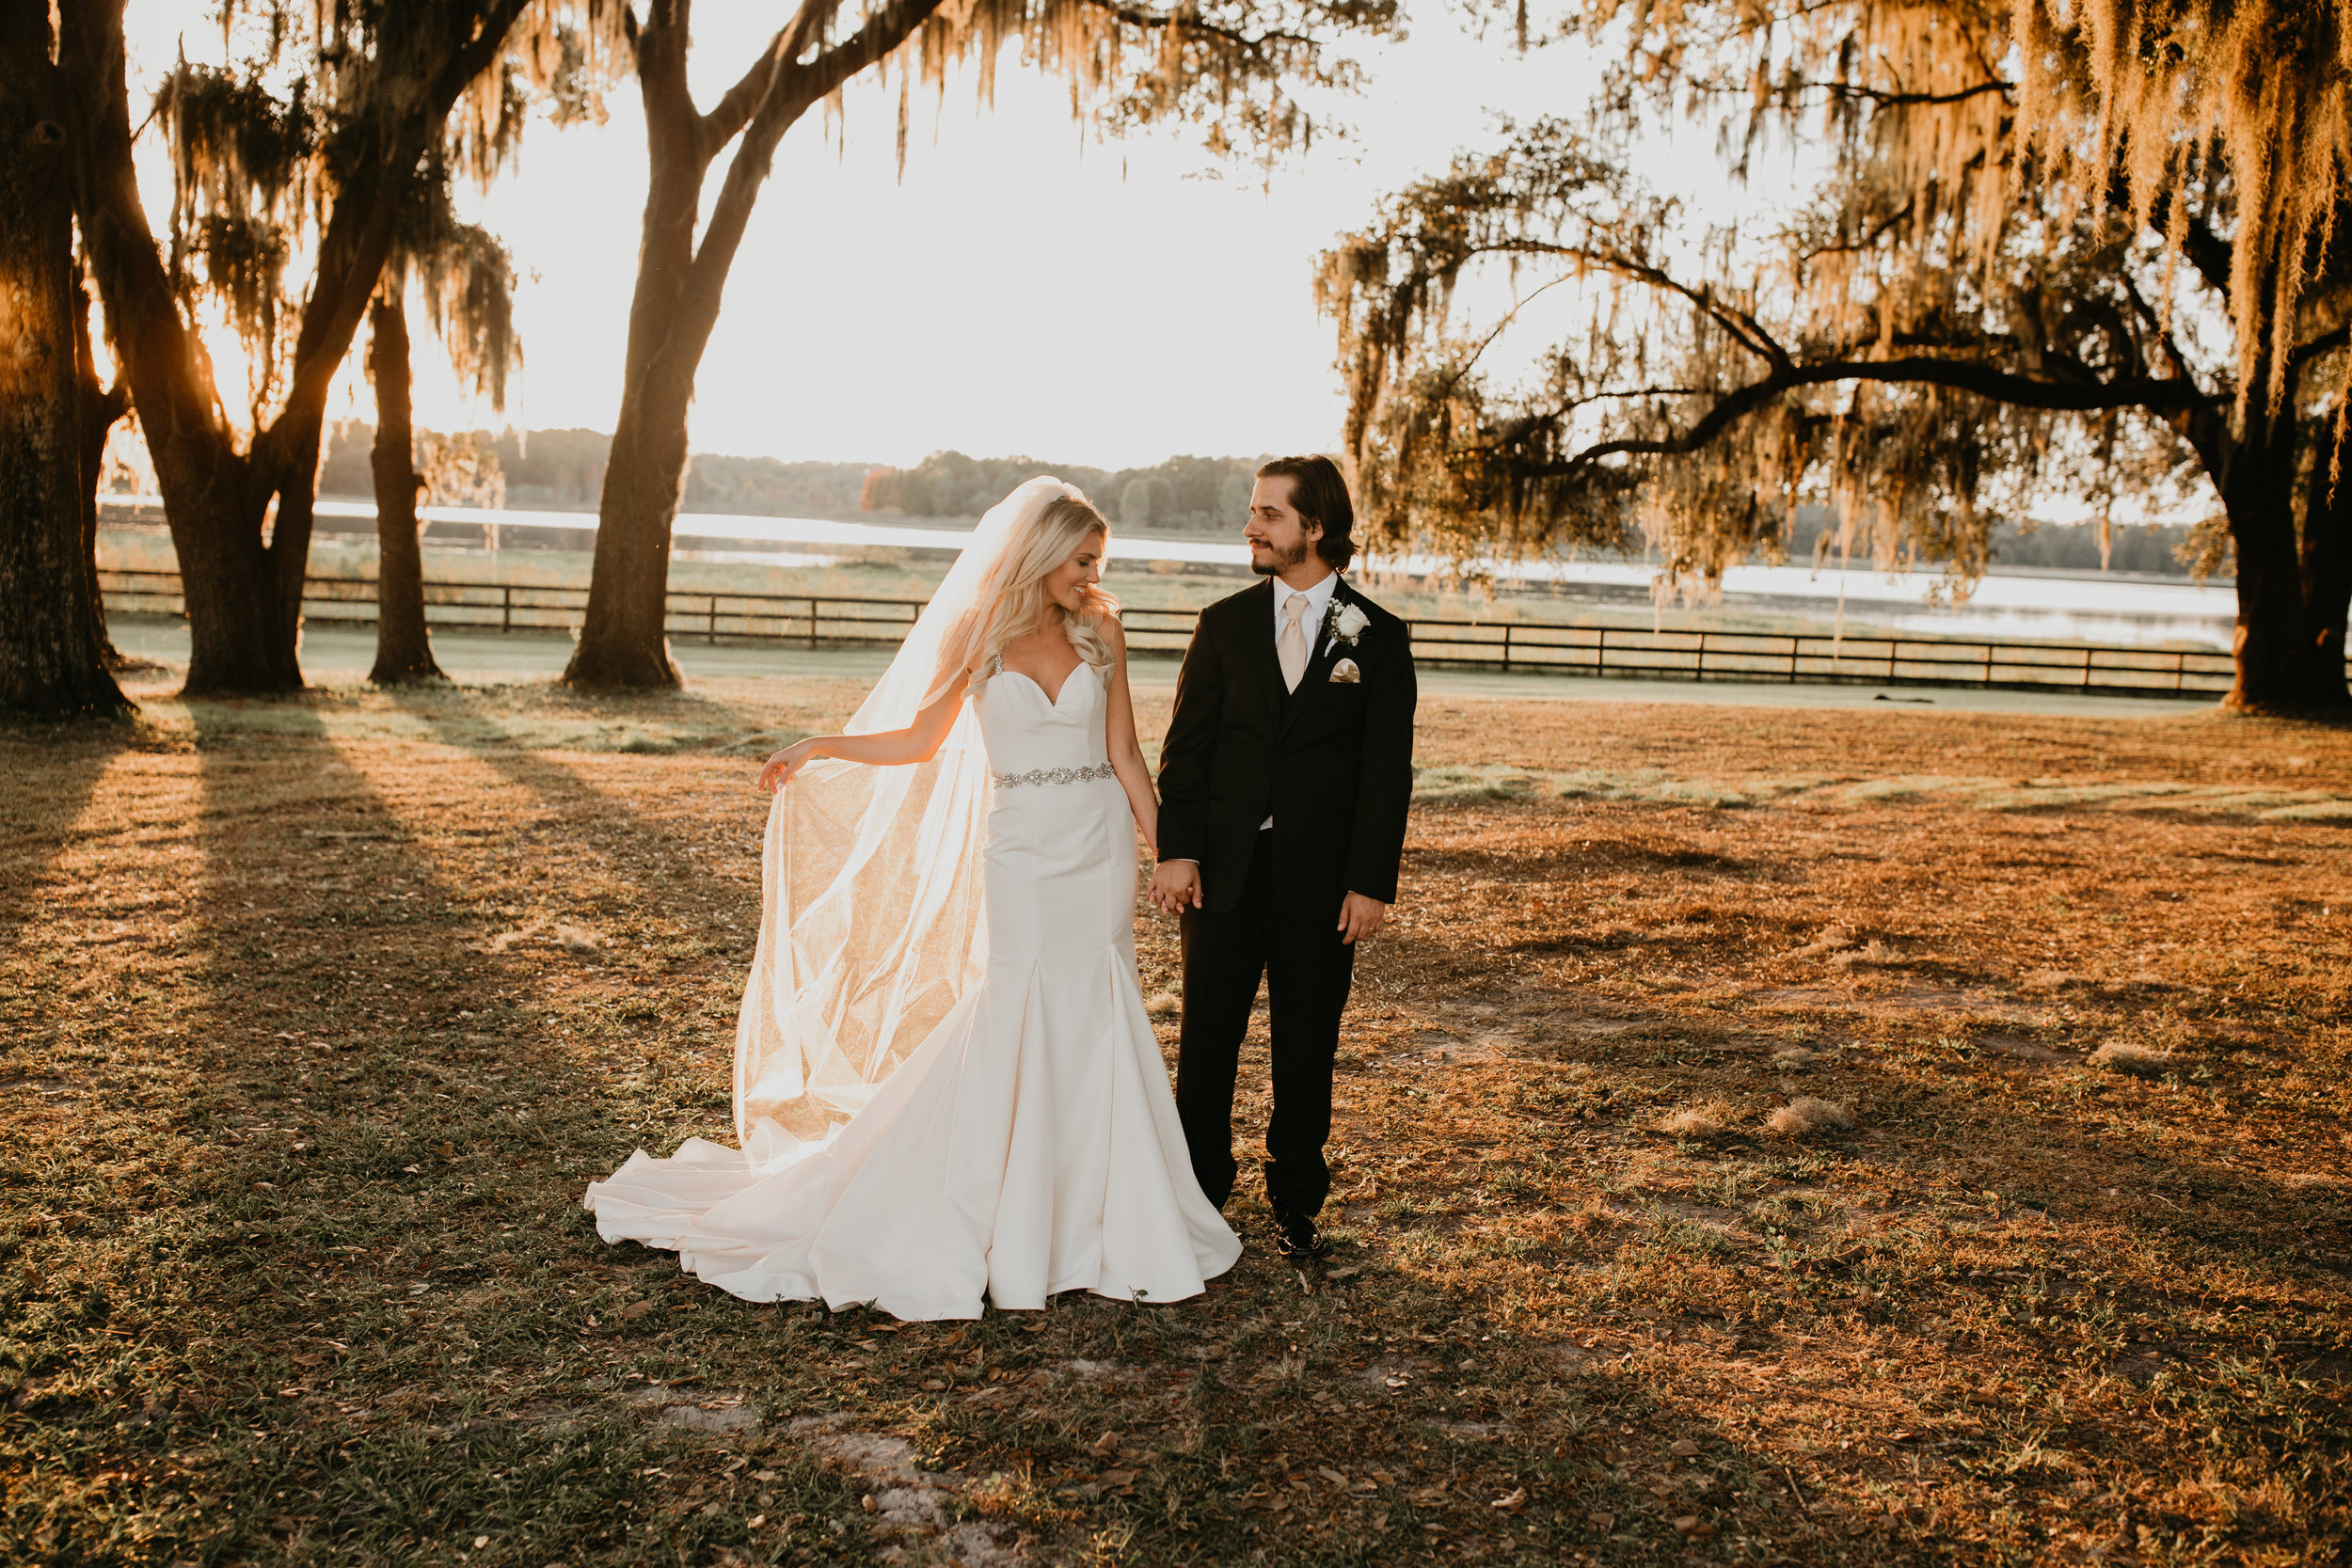 Covington Farms Dade City Florida-Wedding- Beth and Brandon18.JPG